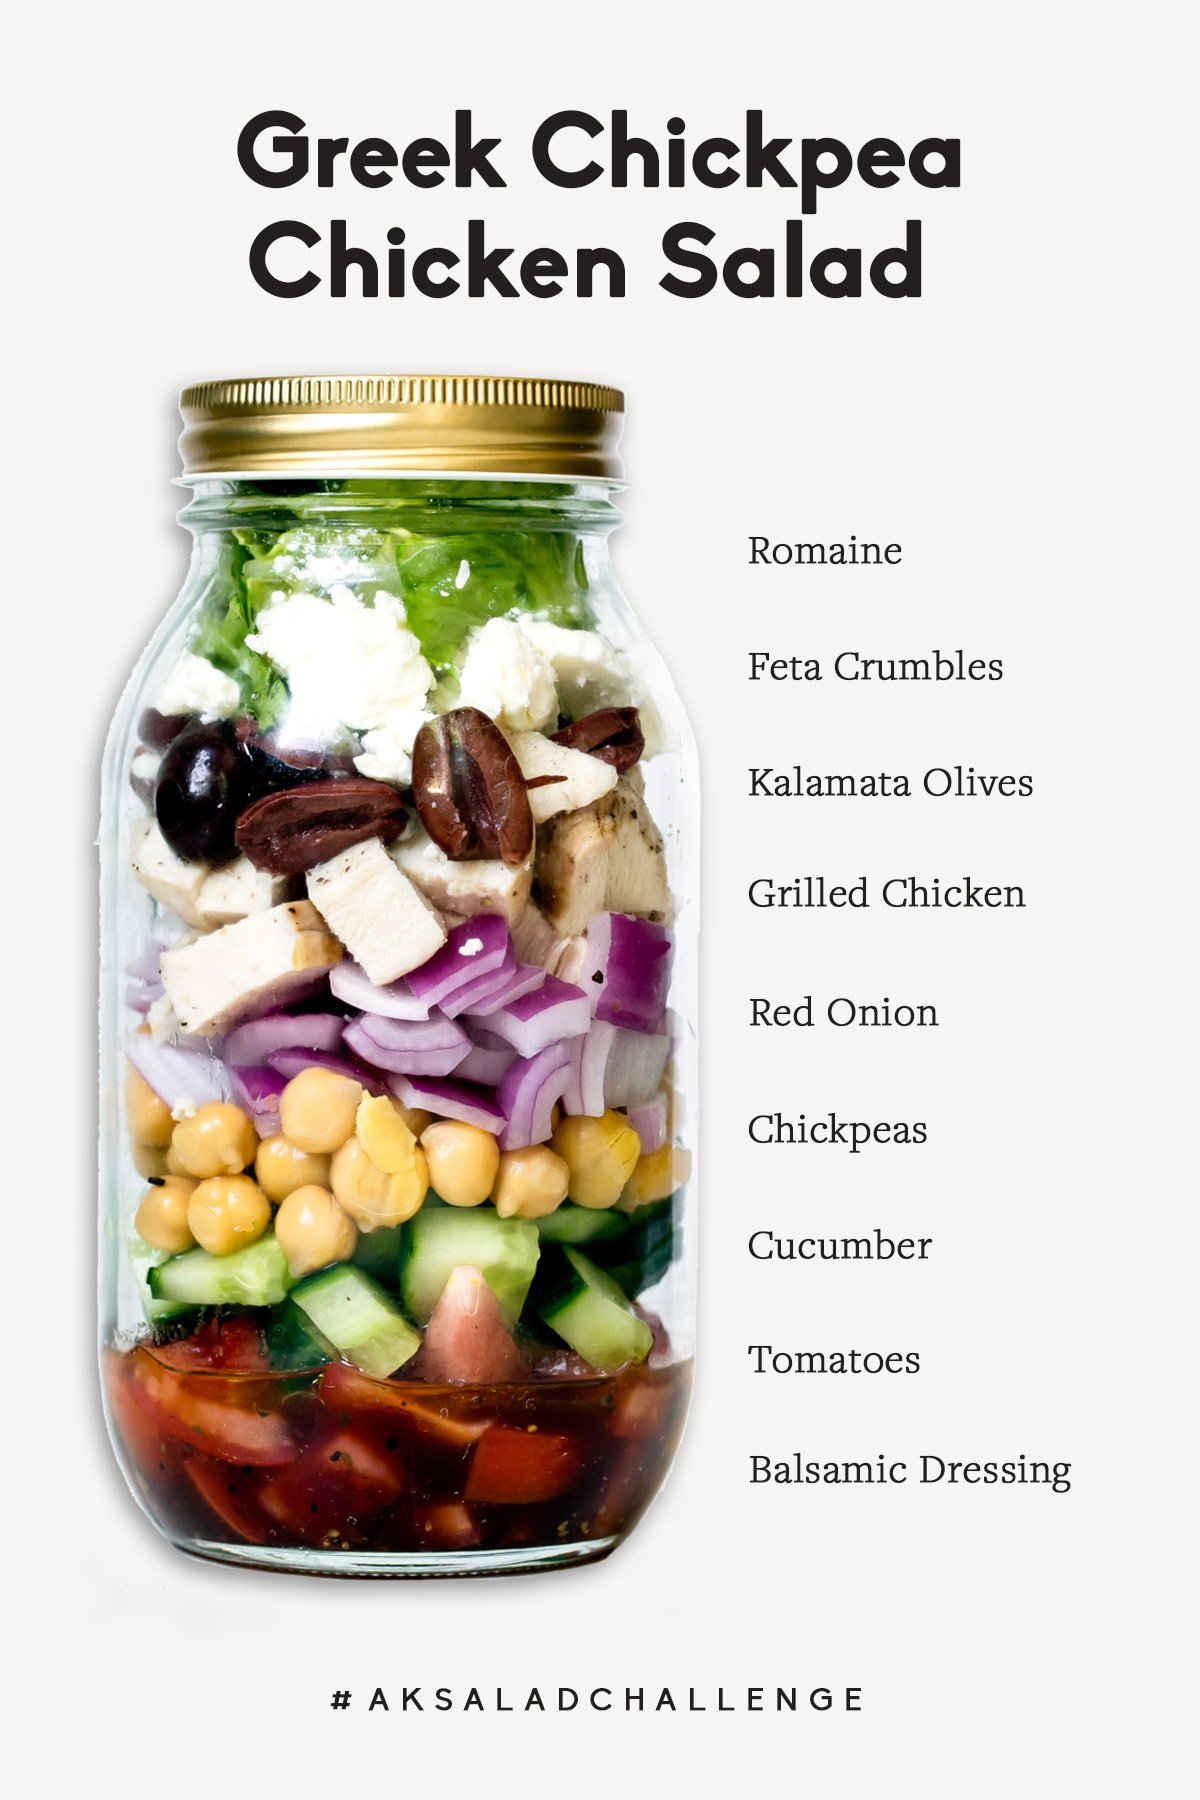 Greek chickpea chicken salad in a mason jar with labels next to each ingredient